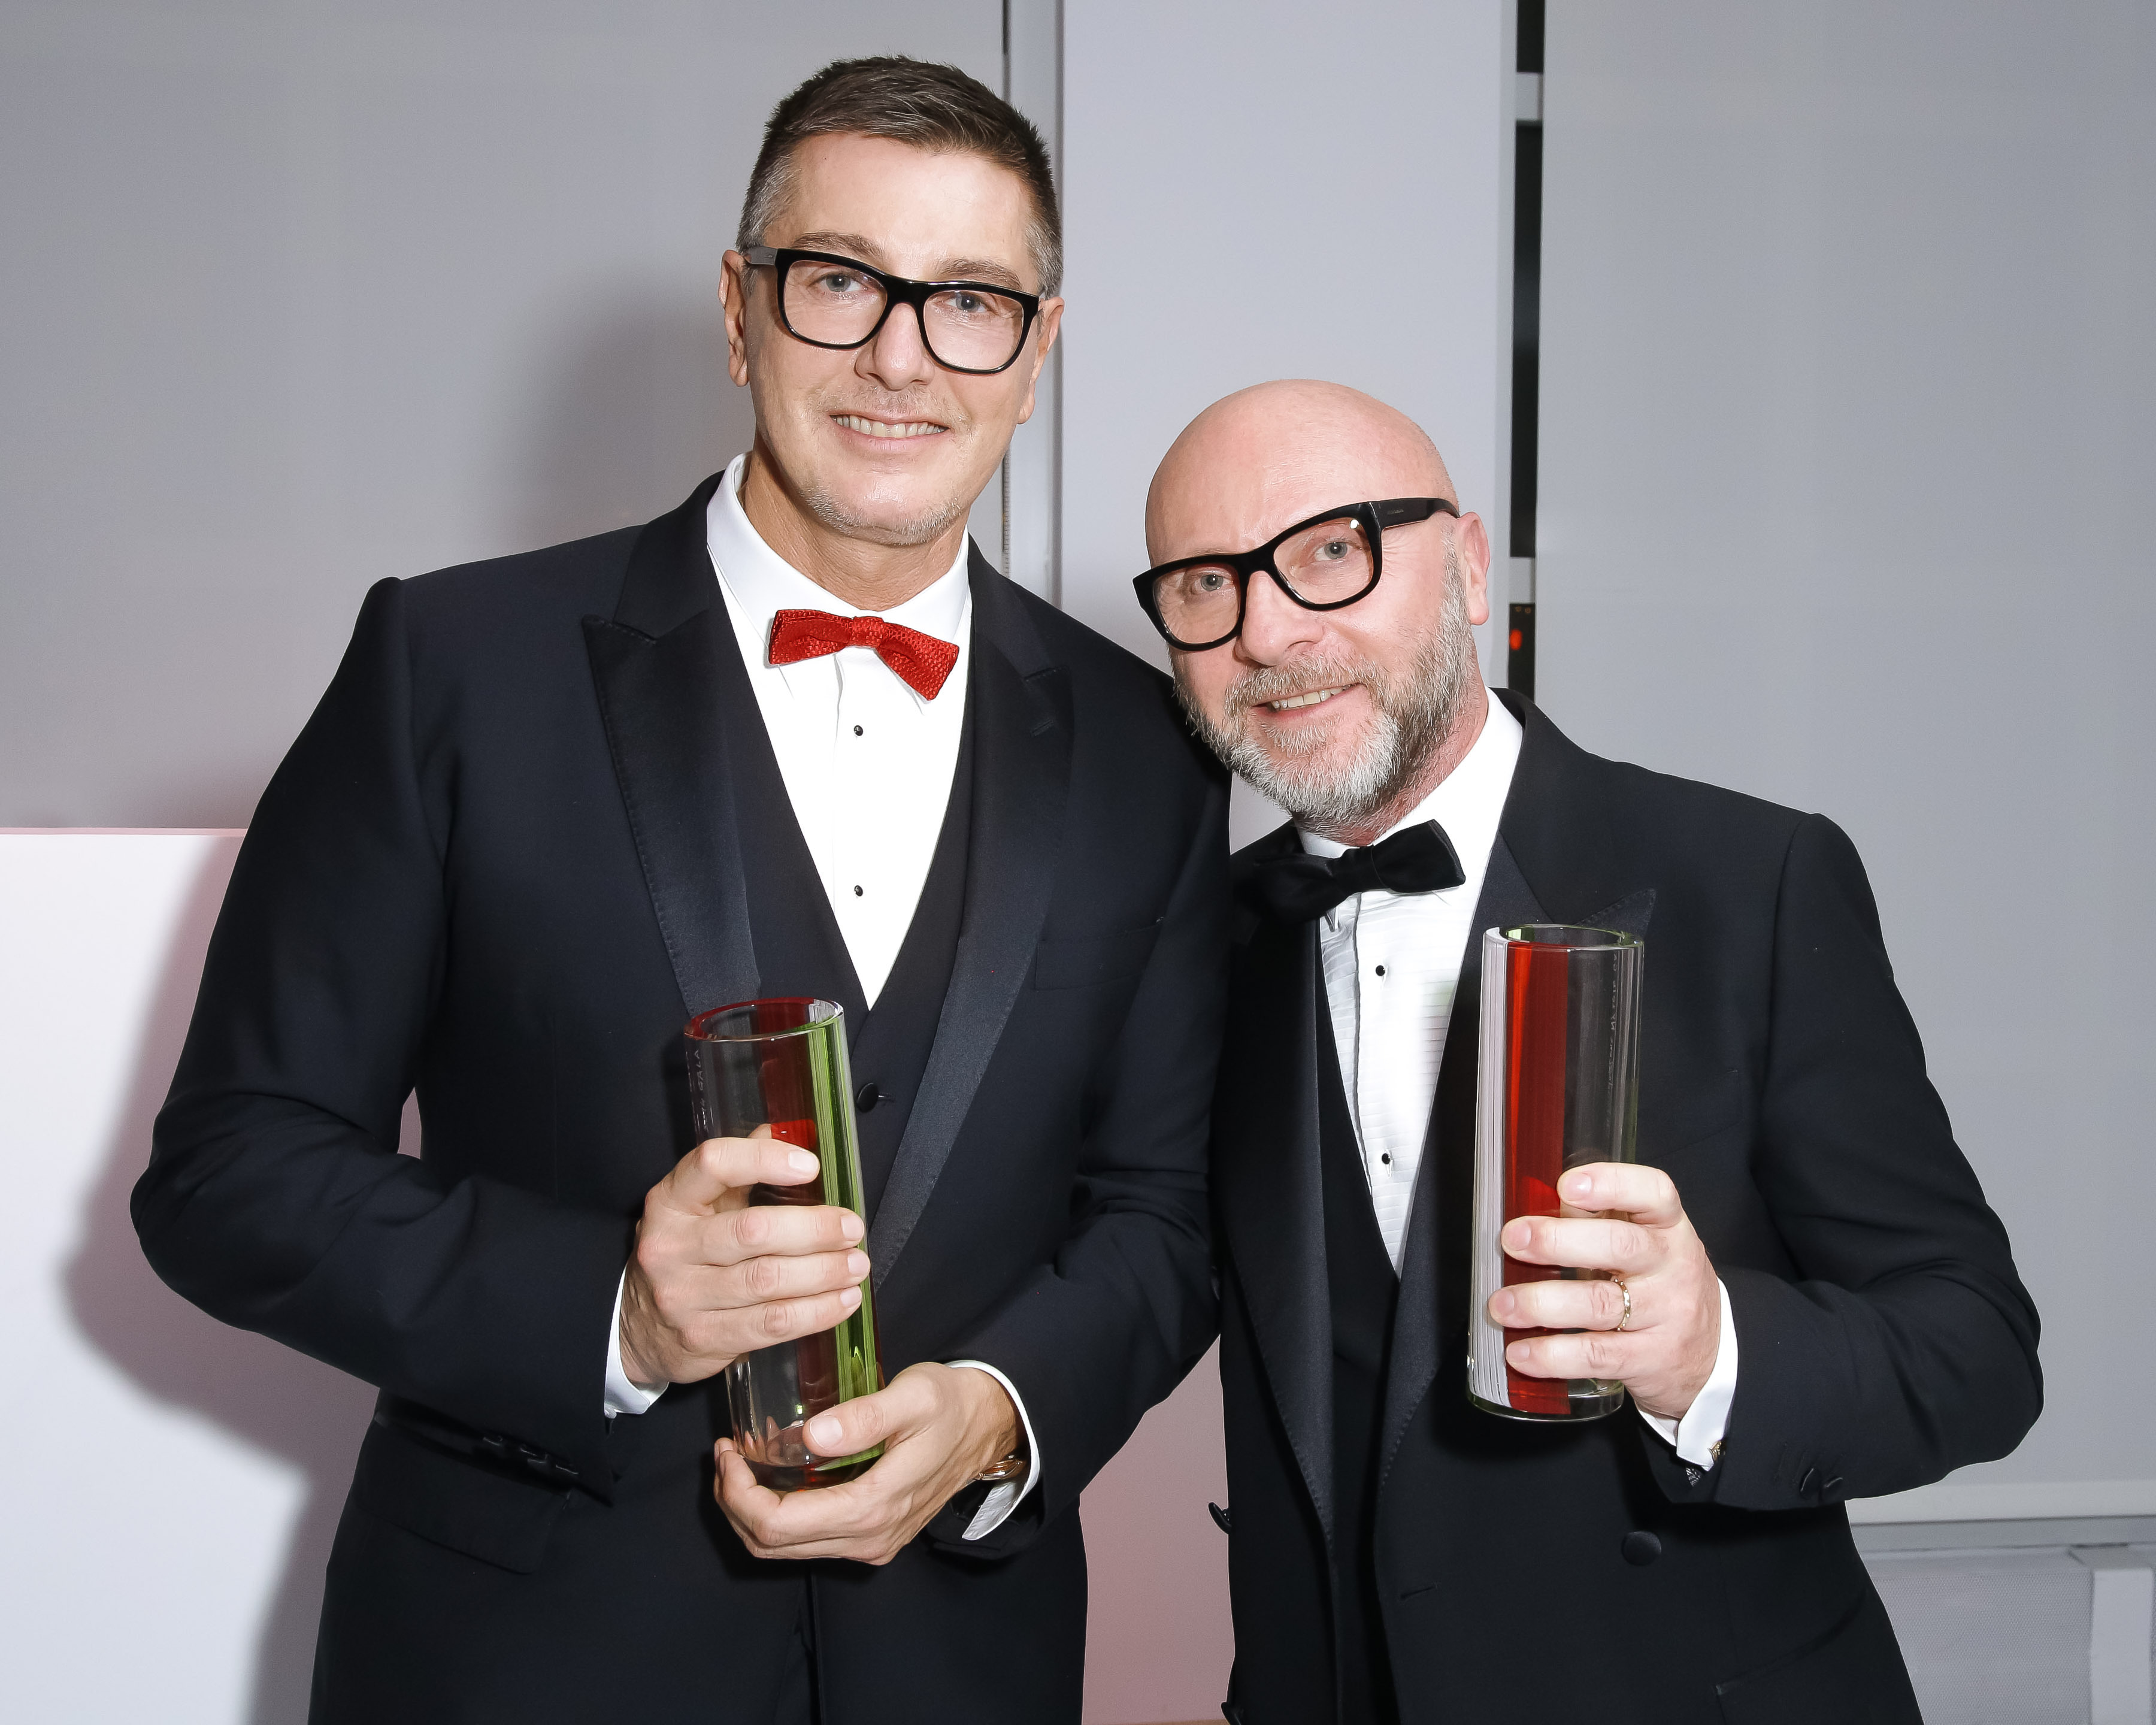 The Daily Roundup: Dolce & Gabbana Focus On The Hommes ...